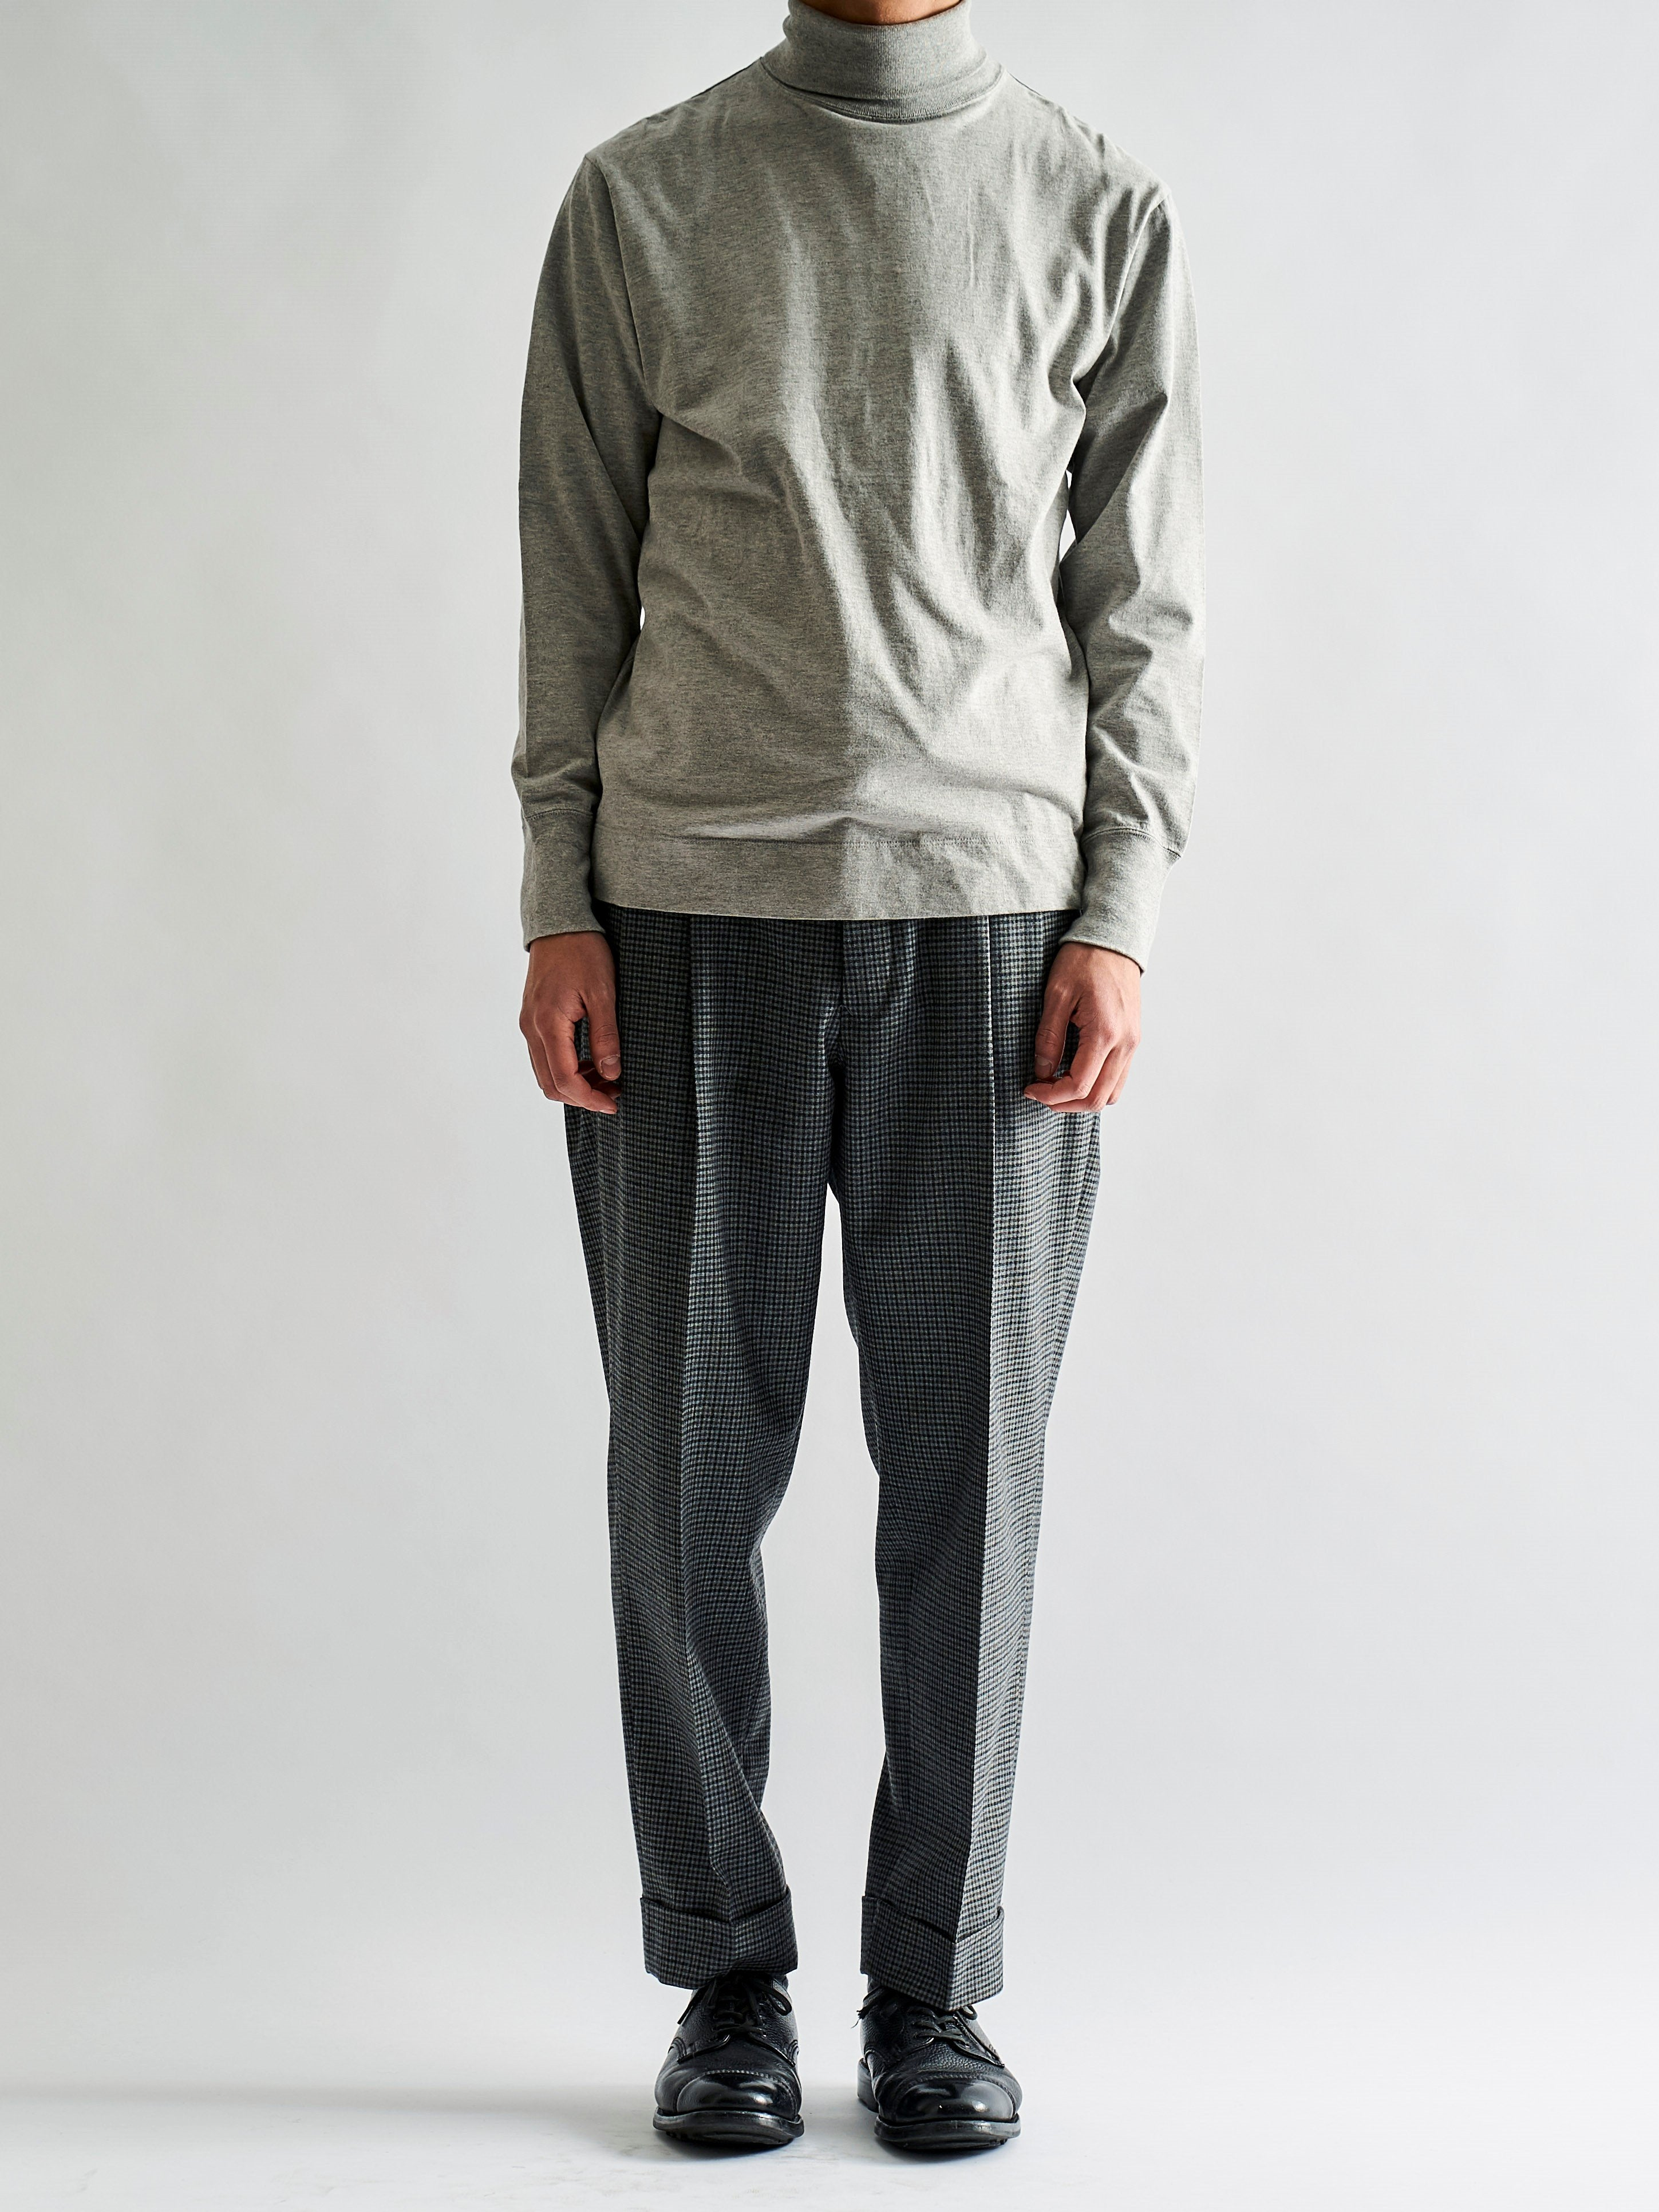 Namu Shop - Phlannel Winter Check Tapered Trousers (Men's)